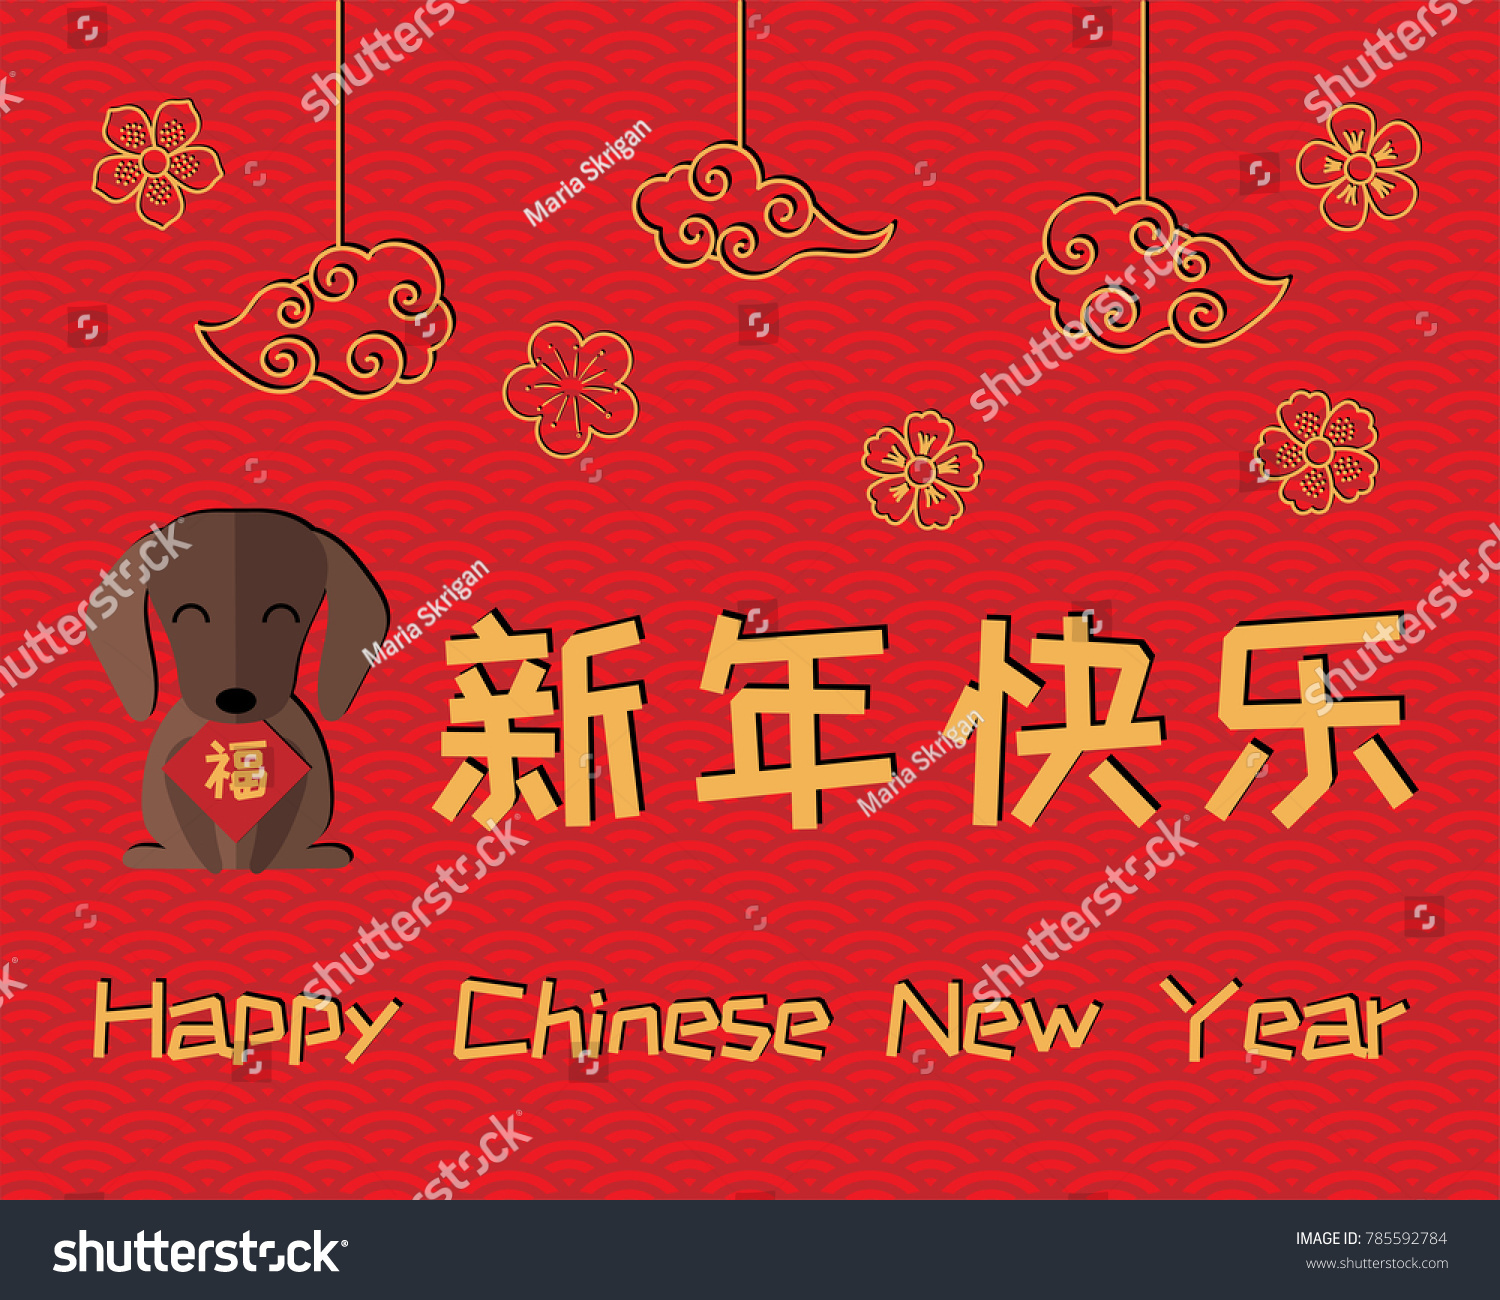 Chinese New Year Greeting Card With Tradisional Asian Patterns